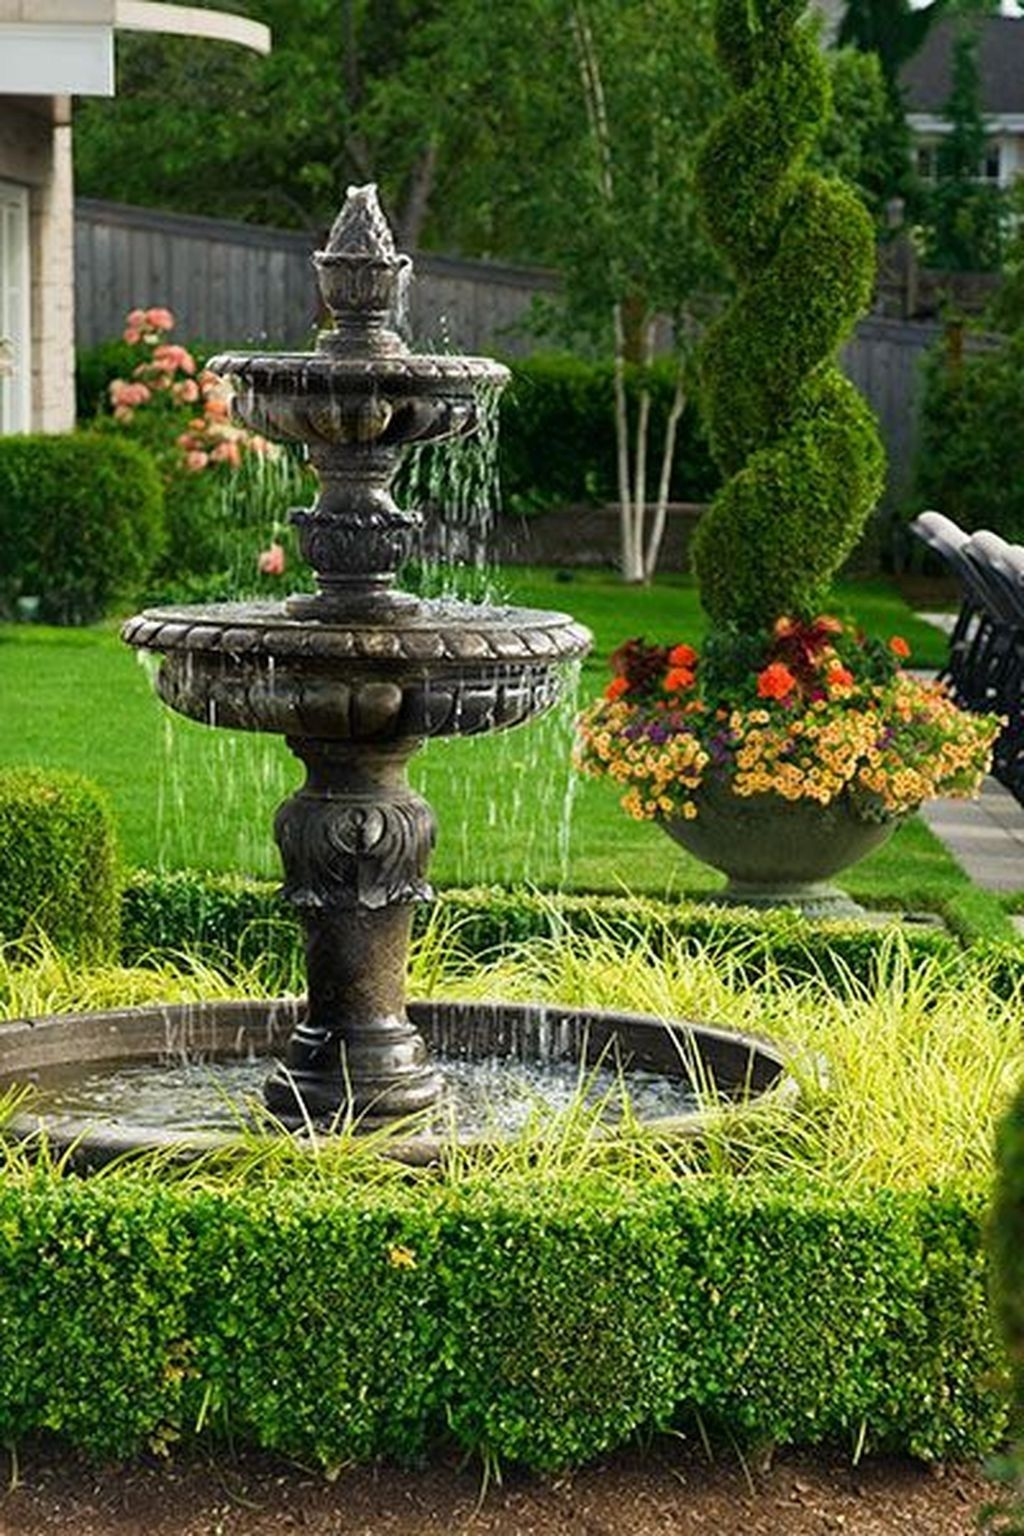 48 Stunning Outdoor Water Fountains Ideas Best For Garden Landscaping